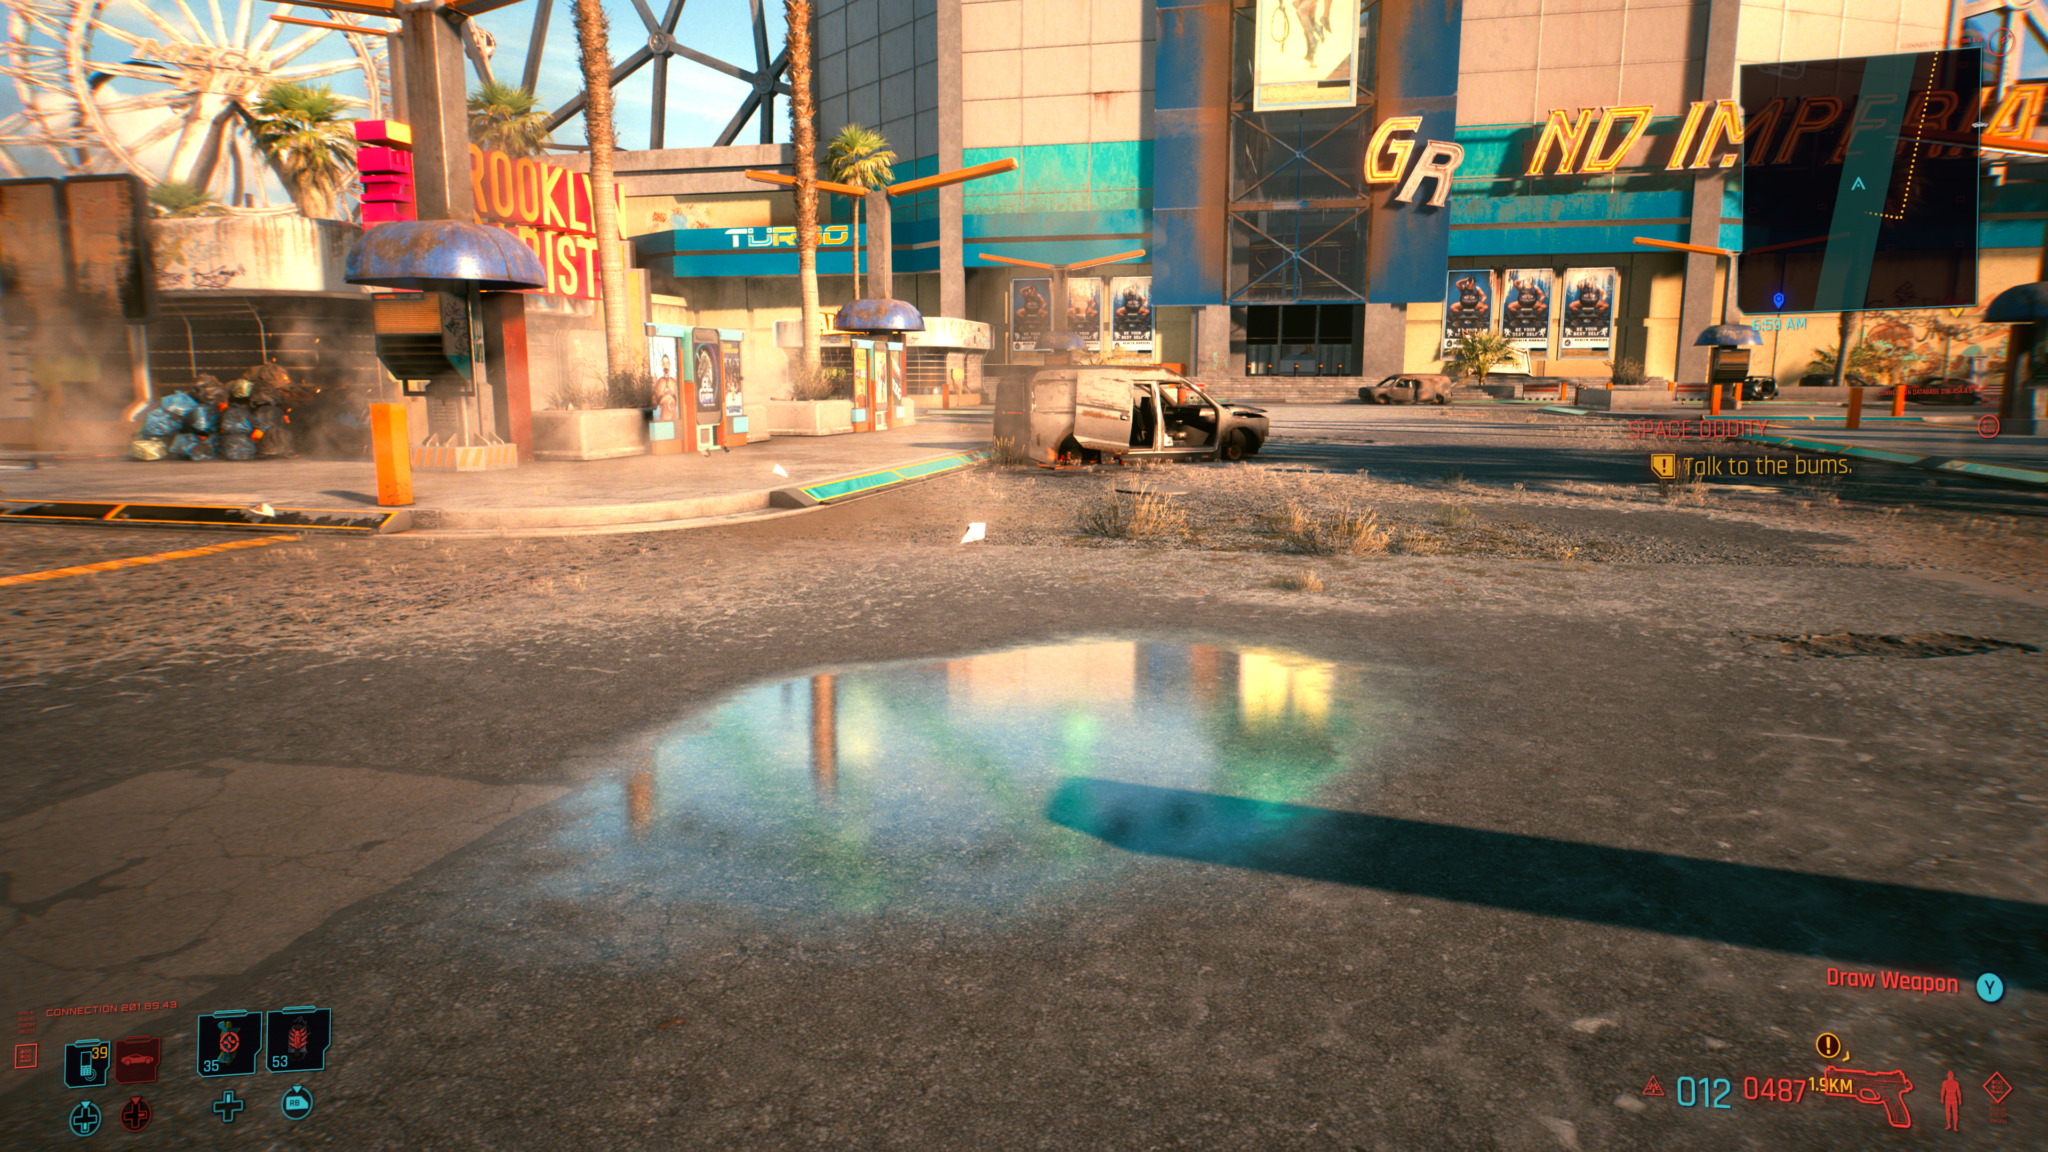 Cyberpunk 2077 (C) 2020 by CD Projekt RED Tag RTX Off Screen Space Reflection Psycho